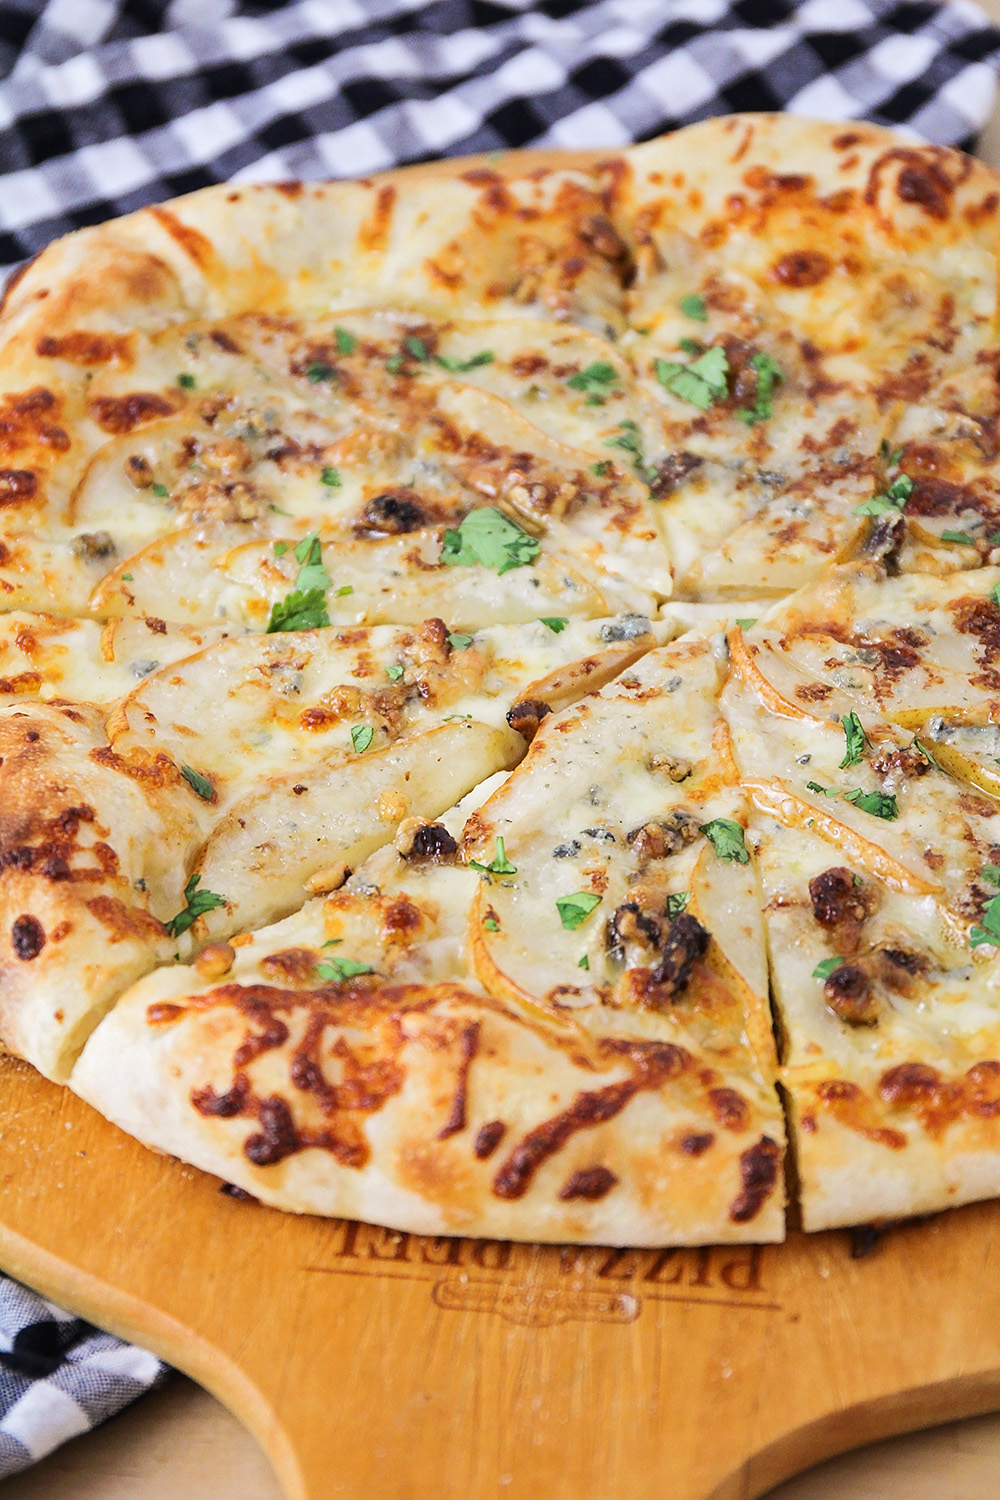 This pear walnut gorgonzola pizza has a delicious combination of flavors, and is super easy to make!